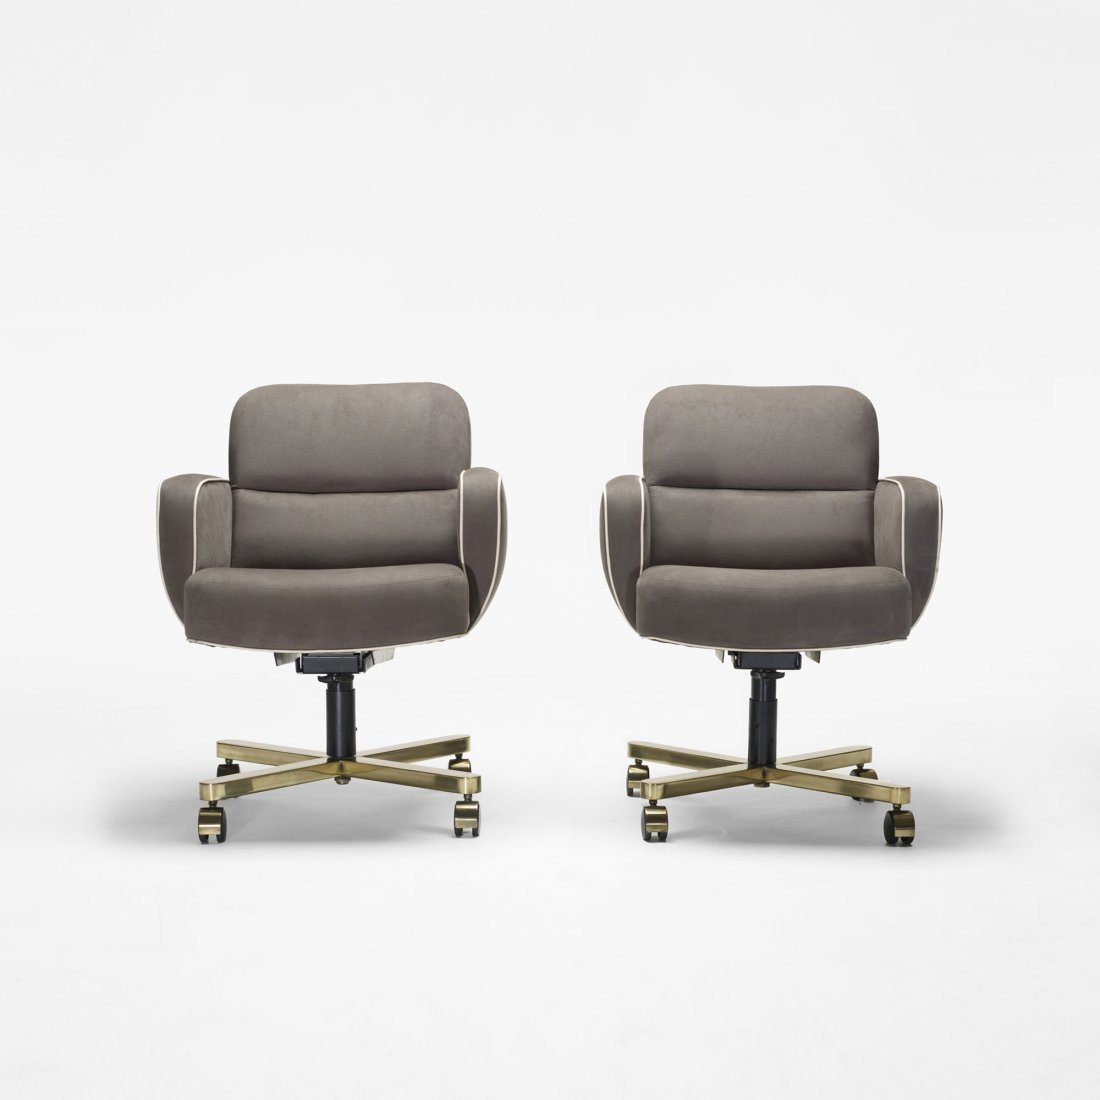 109: American office chairs, pair